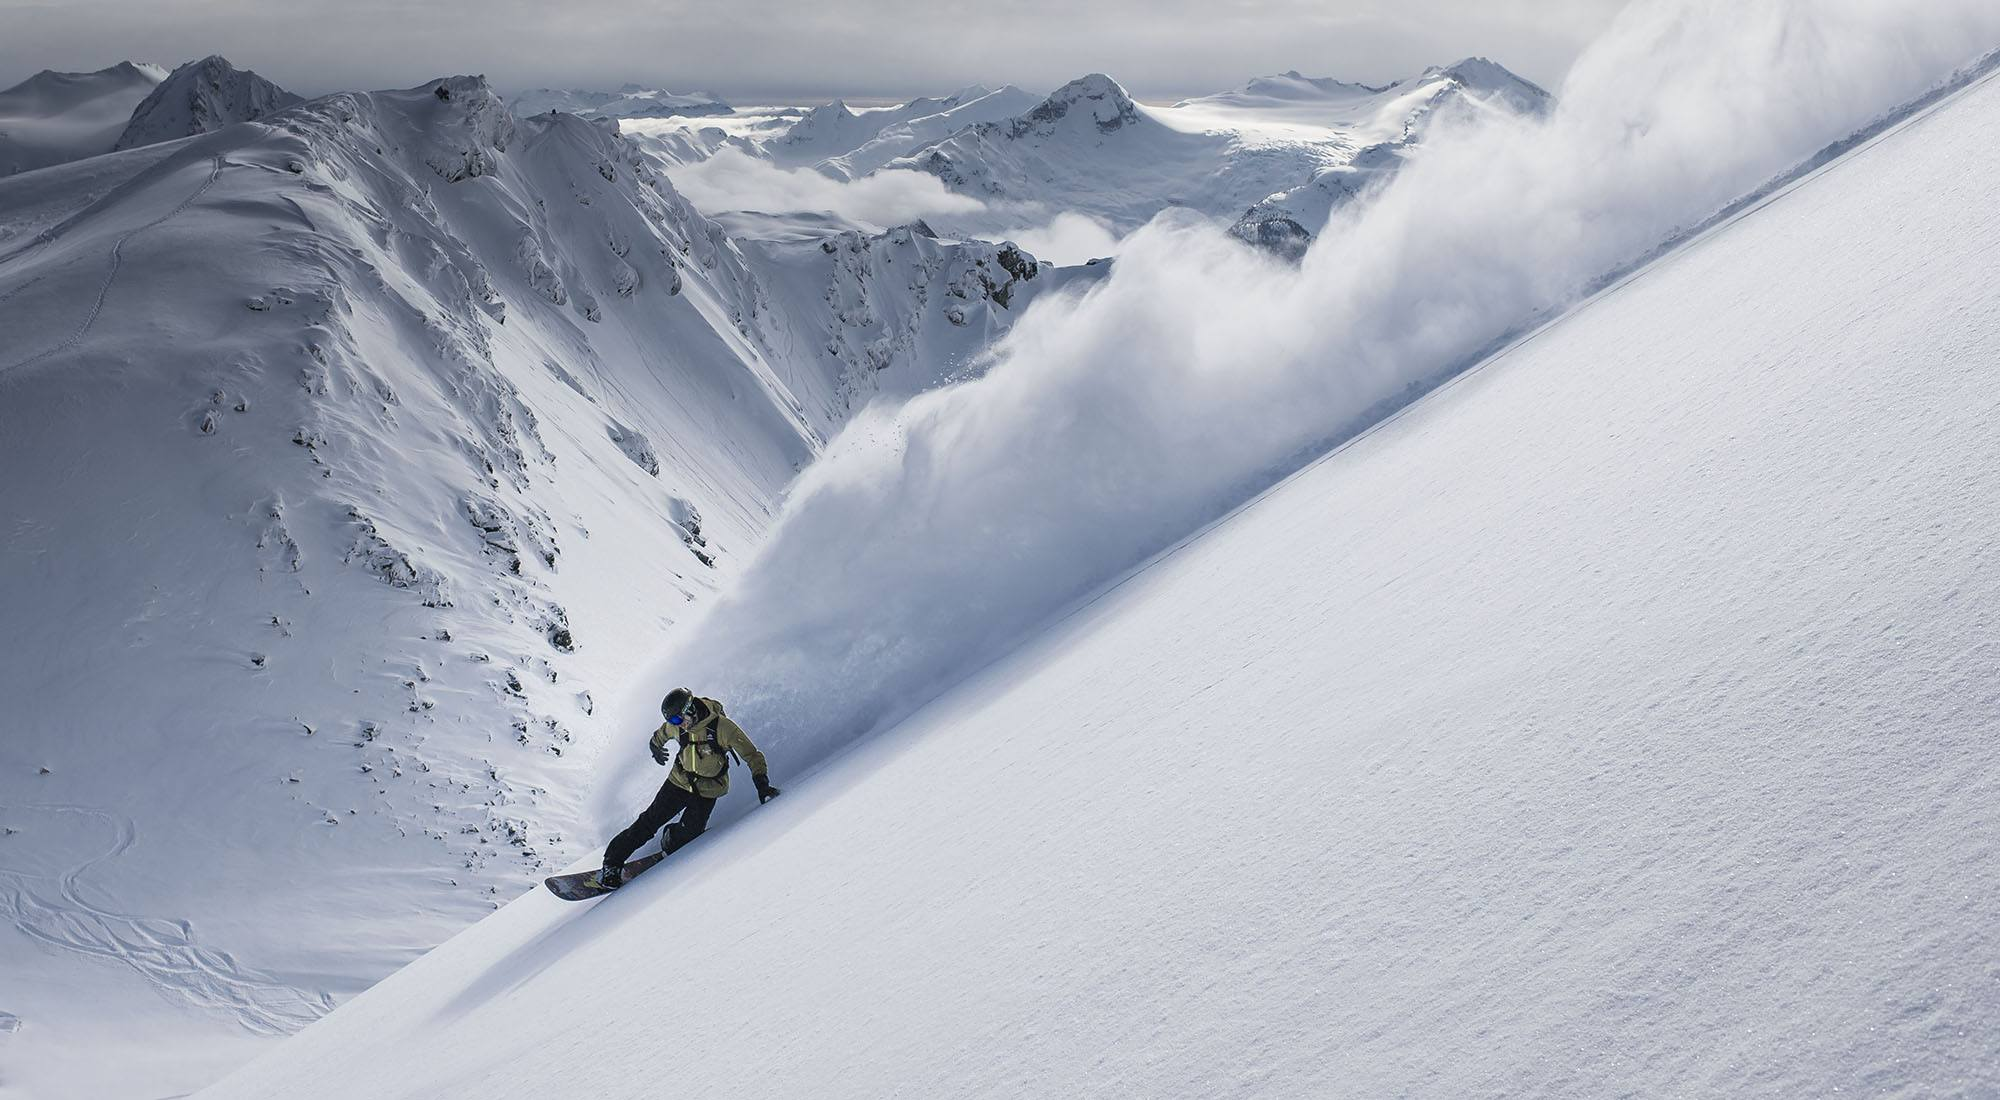 Blackcomb opening brings another huge dump of snow (PHOTOS)